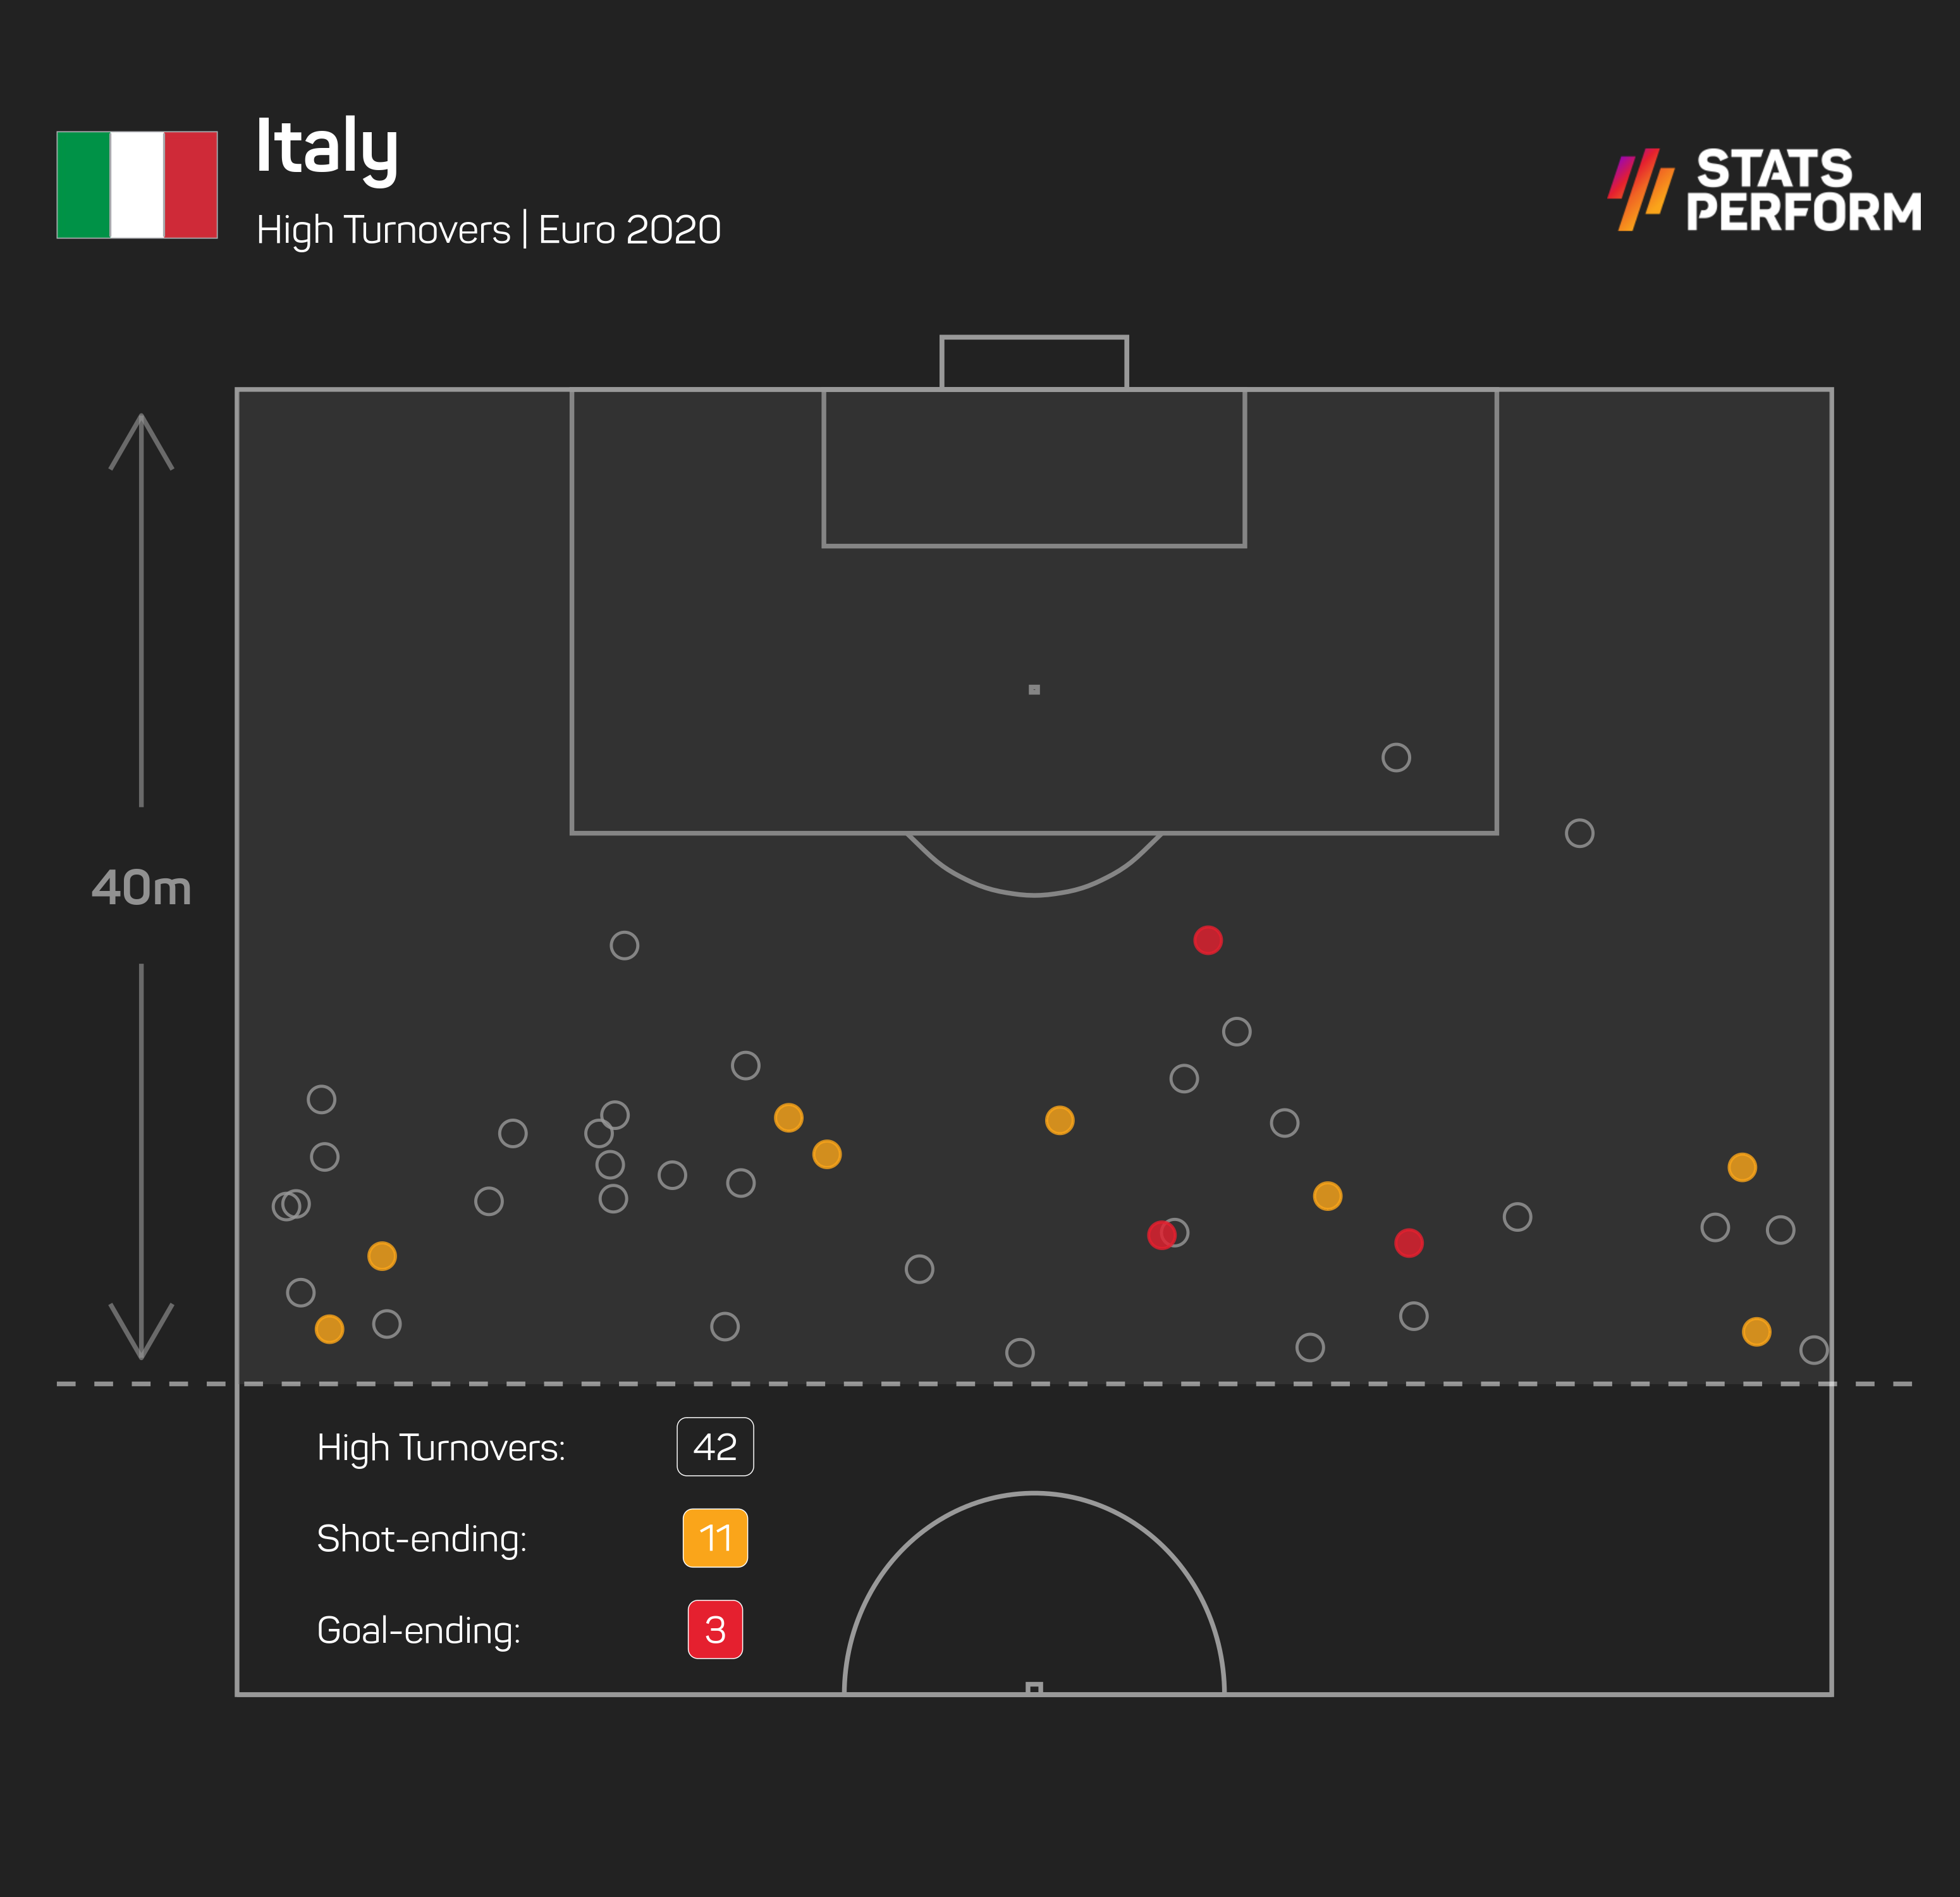 Italy have forced more shots and goals from high turnovers than any other team